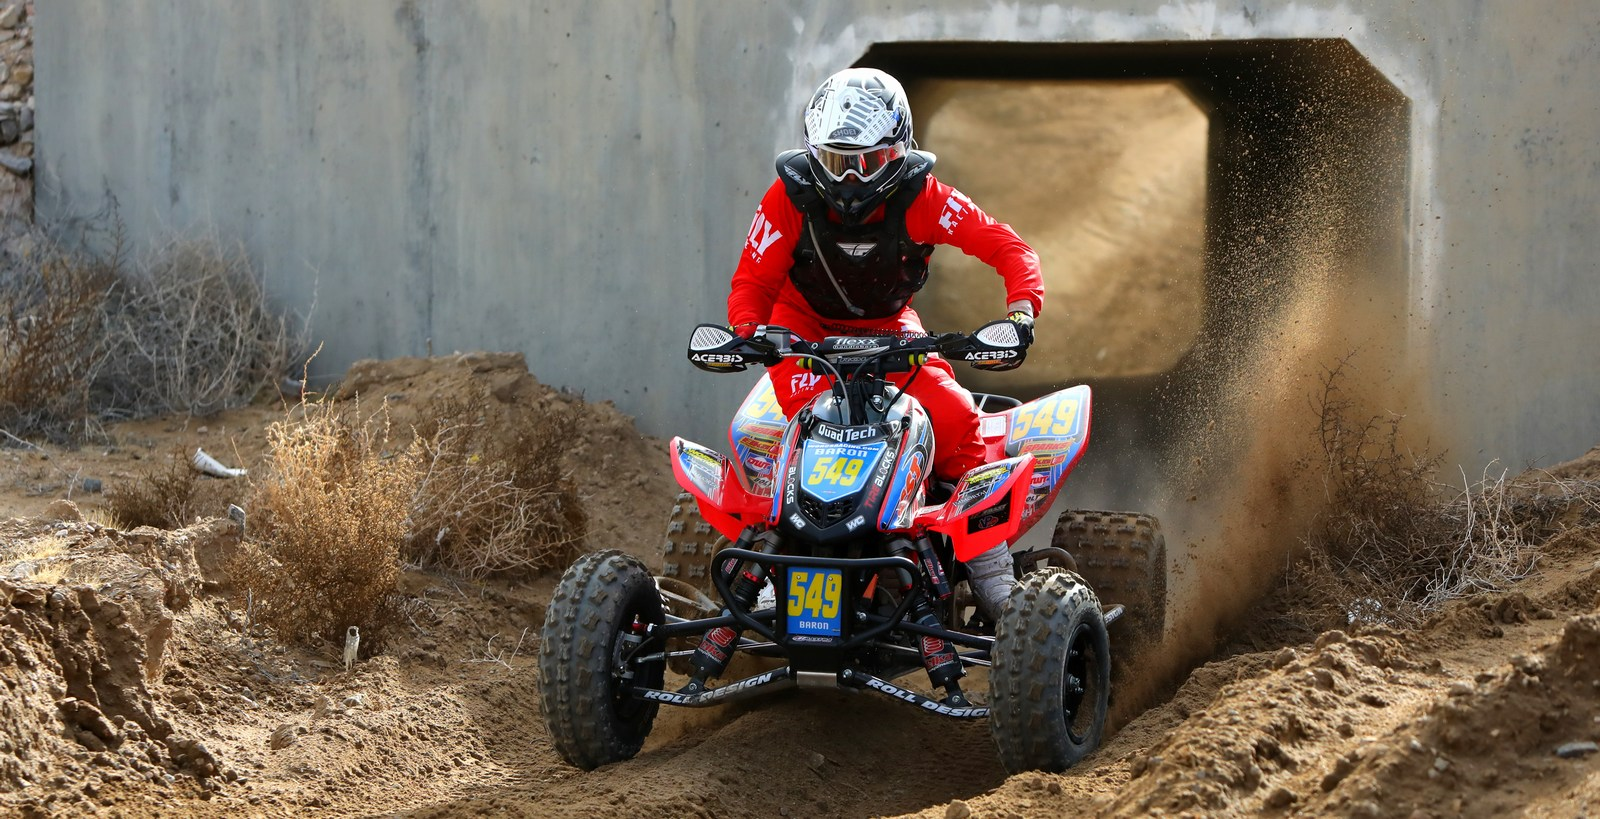 2019-01-beau-baron-atv-tunnel-worcs-racing